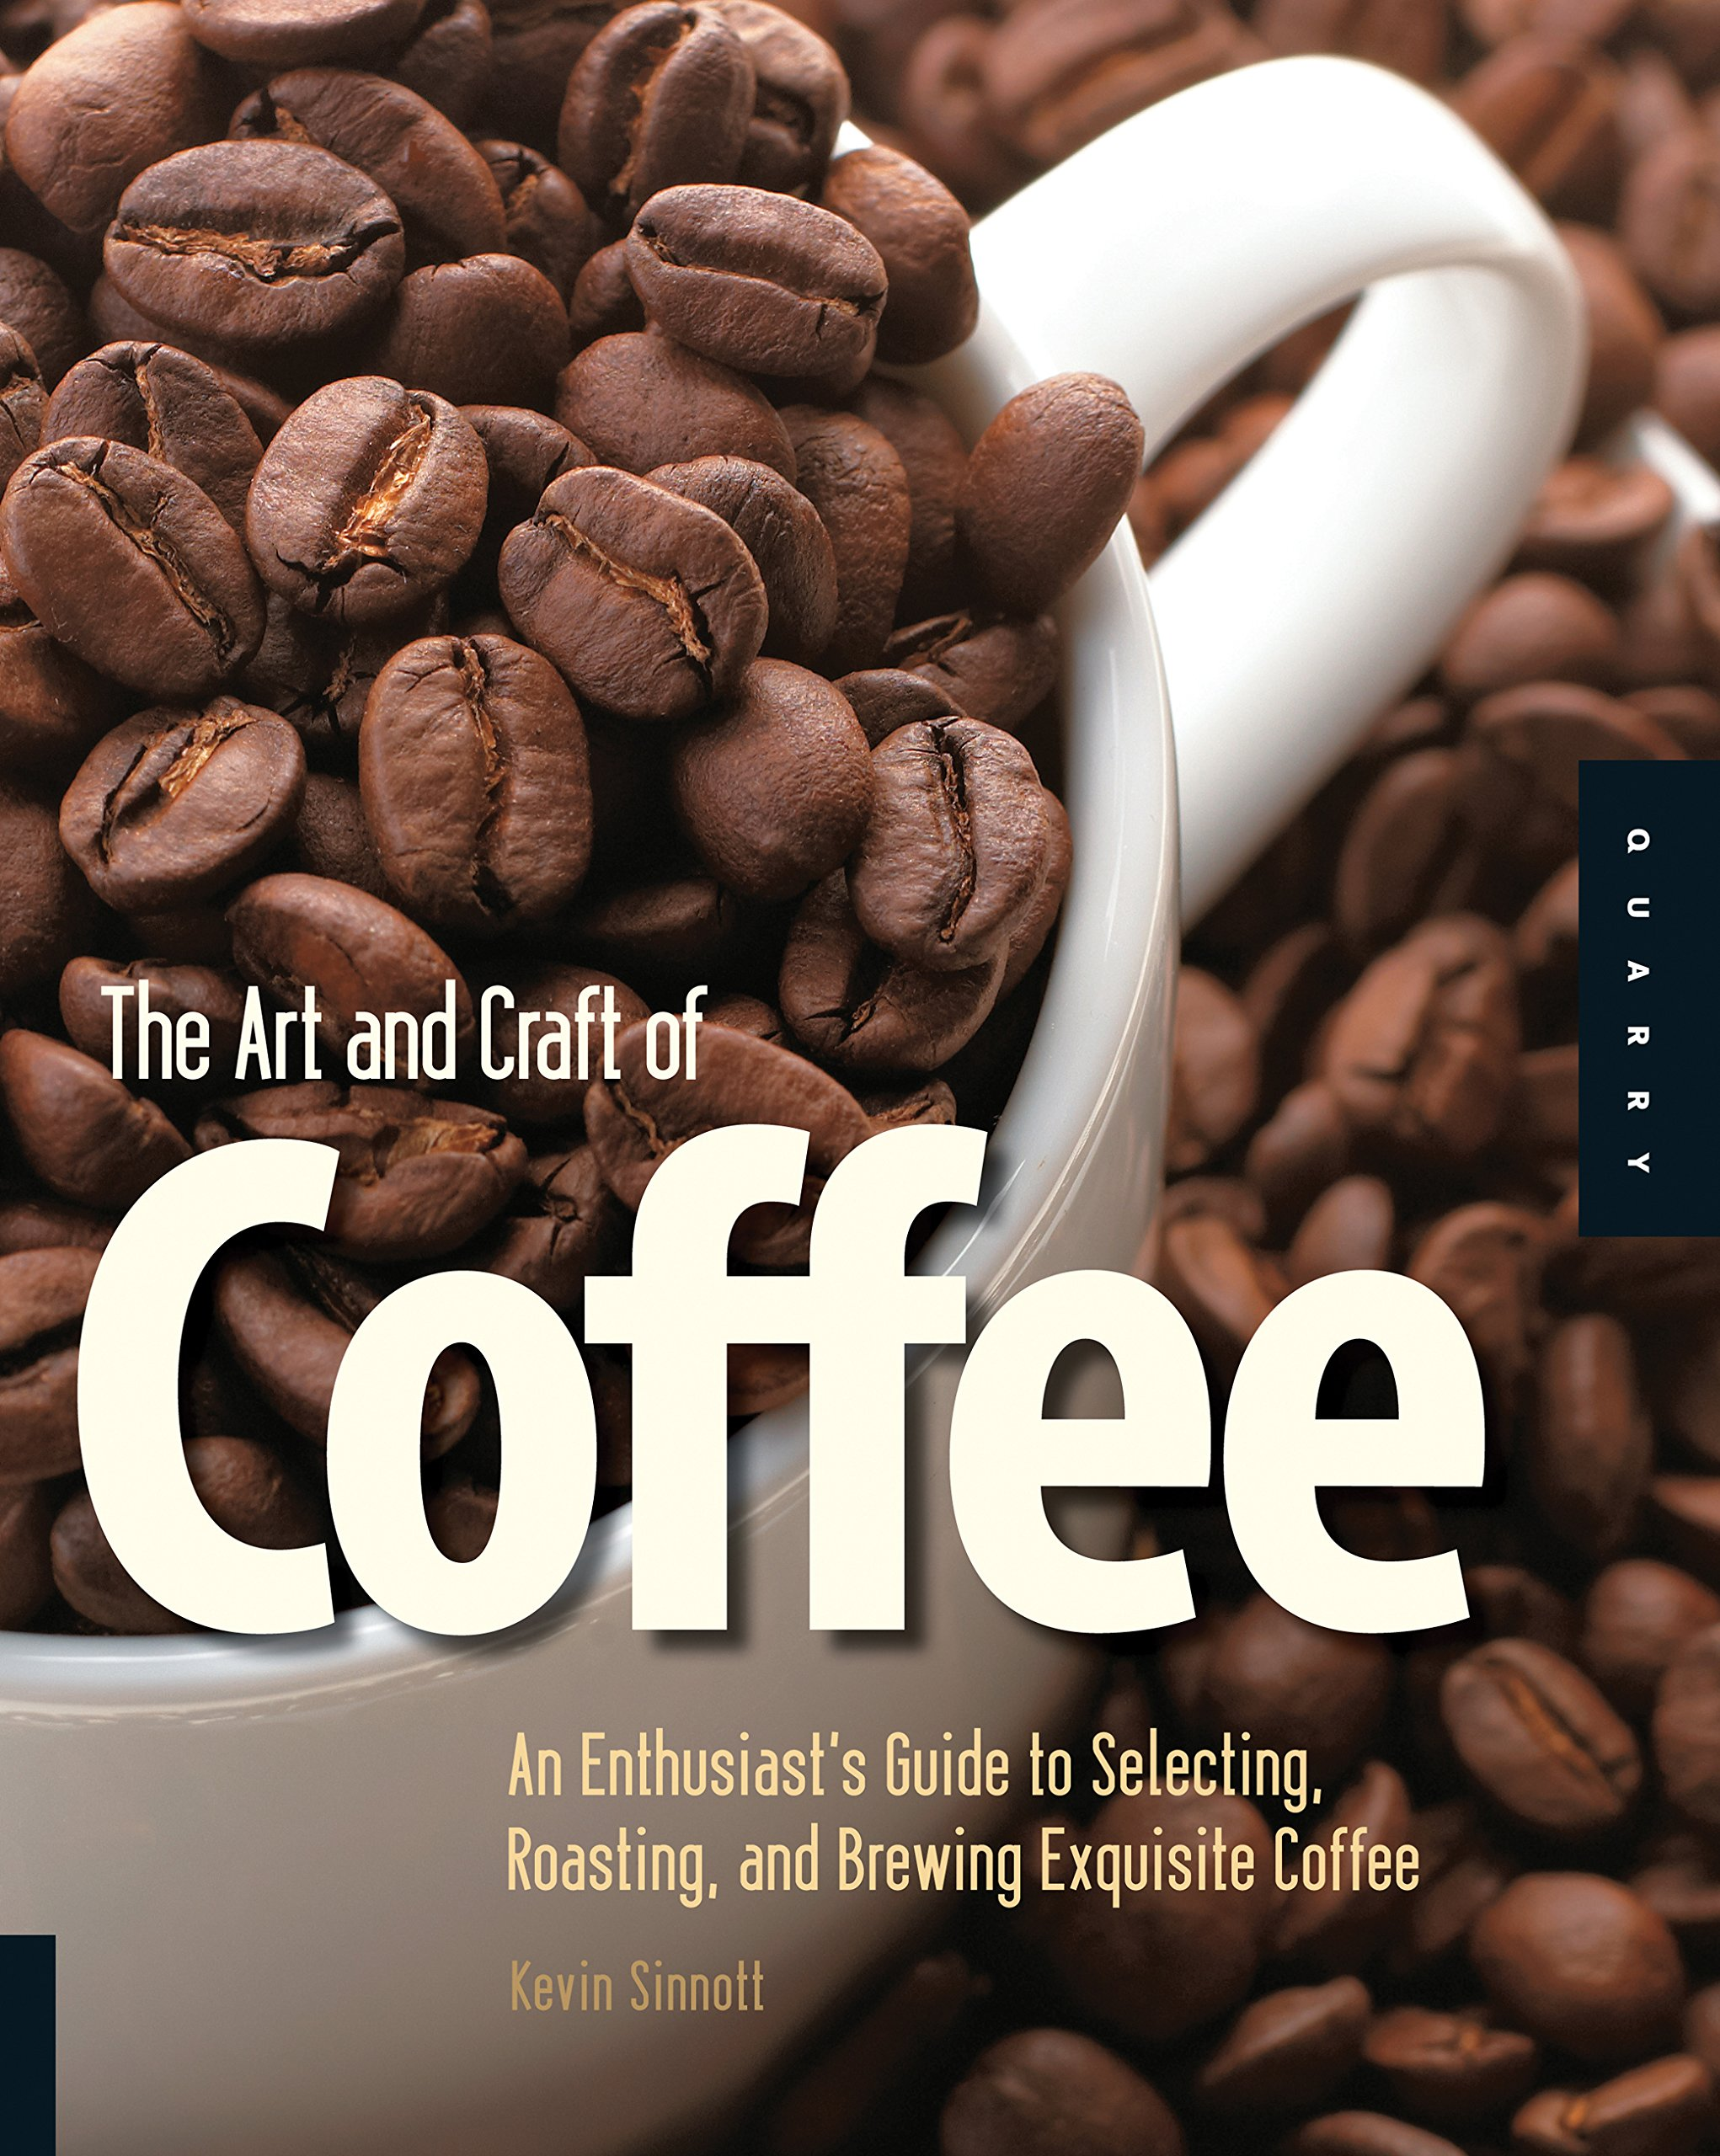 The Art and Craft of Coffee: An Enthusiast's Guide to